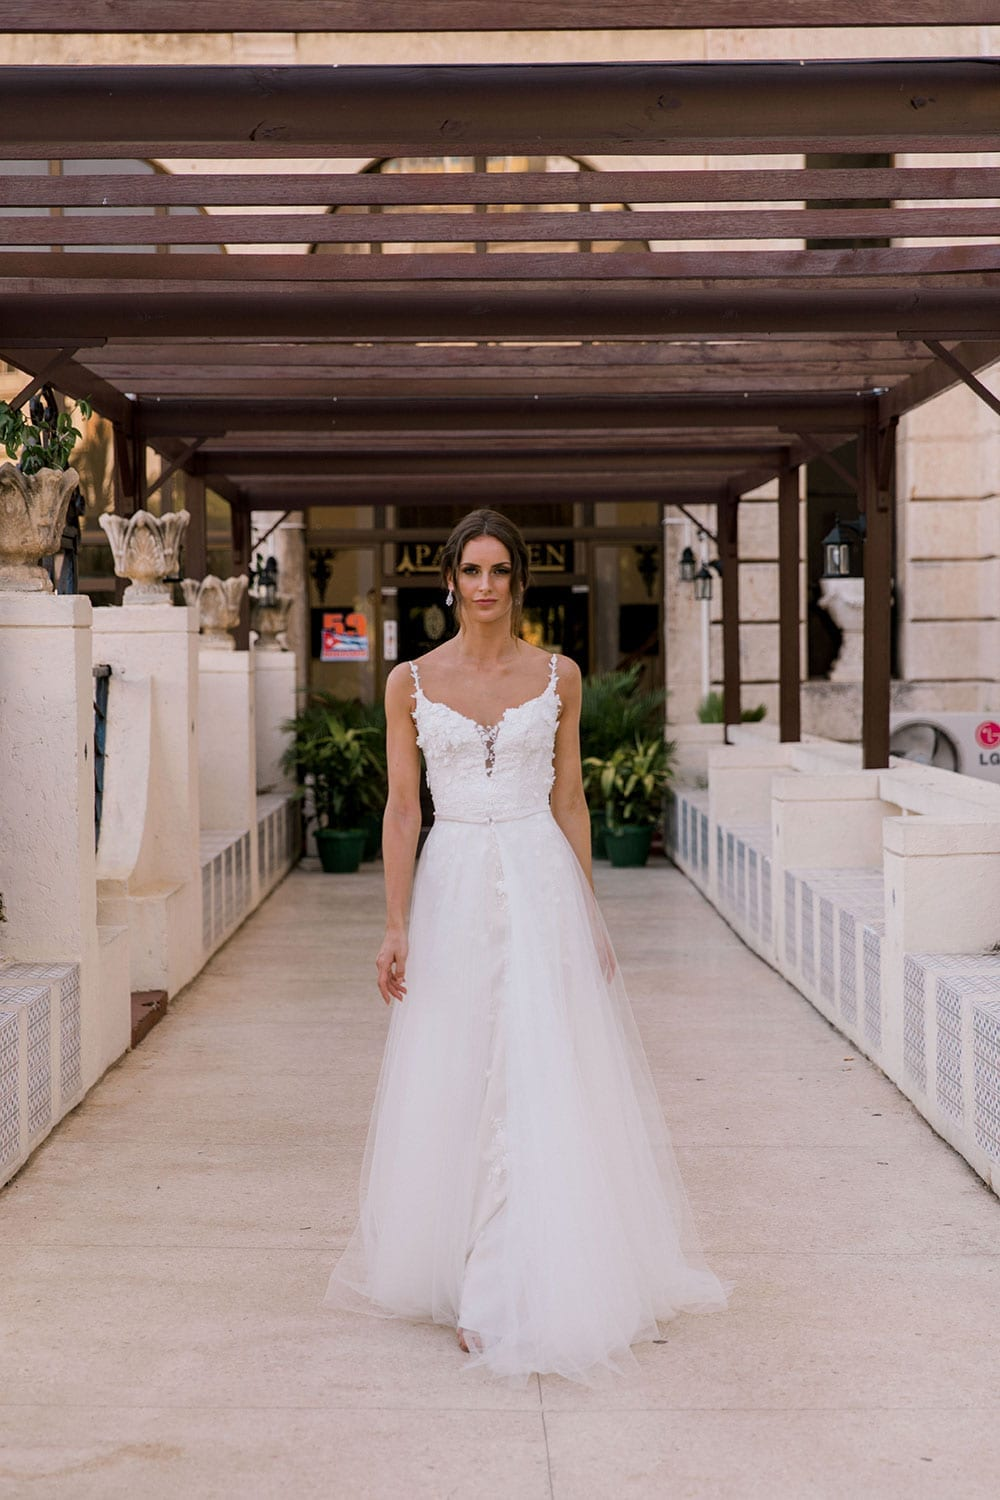 Model wearing Vinka Design Alicia Wedding Dress, a Embroidered Wedding Gown & Skirt in the entrance to the Hotel Nacional in Havana Cuba